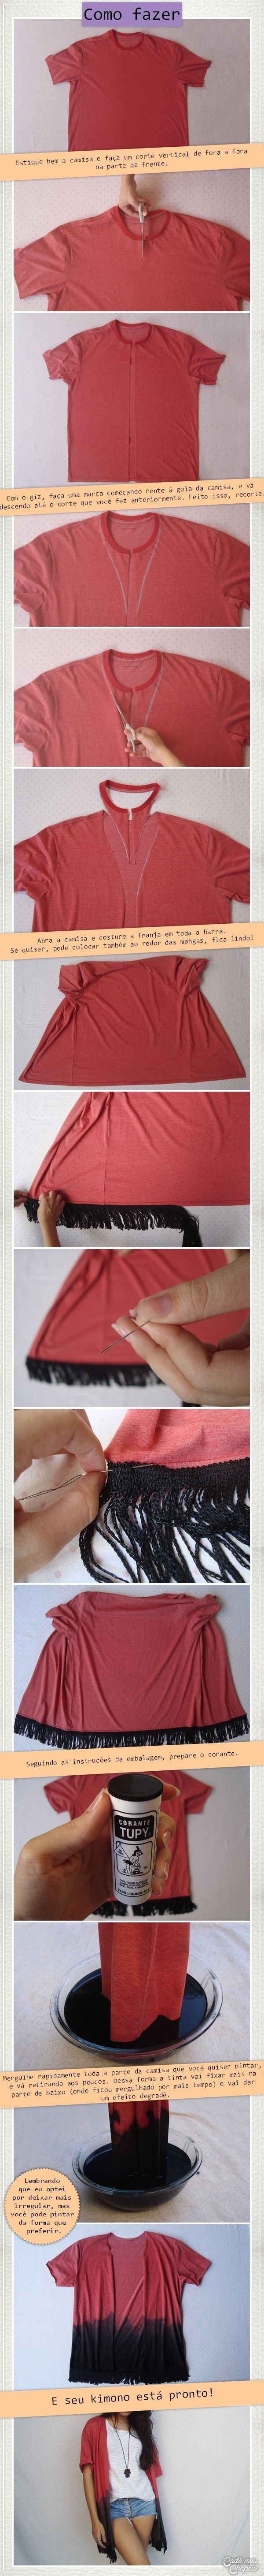 Tutoriales para re-decorar tu ropa                                                                                                                                                     Más